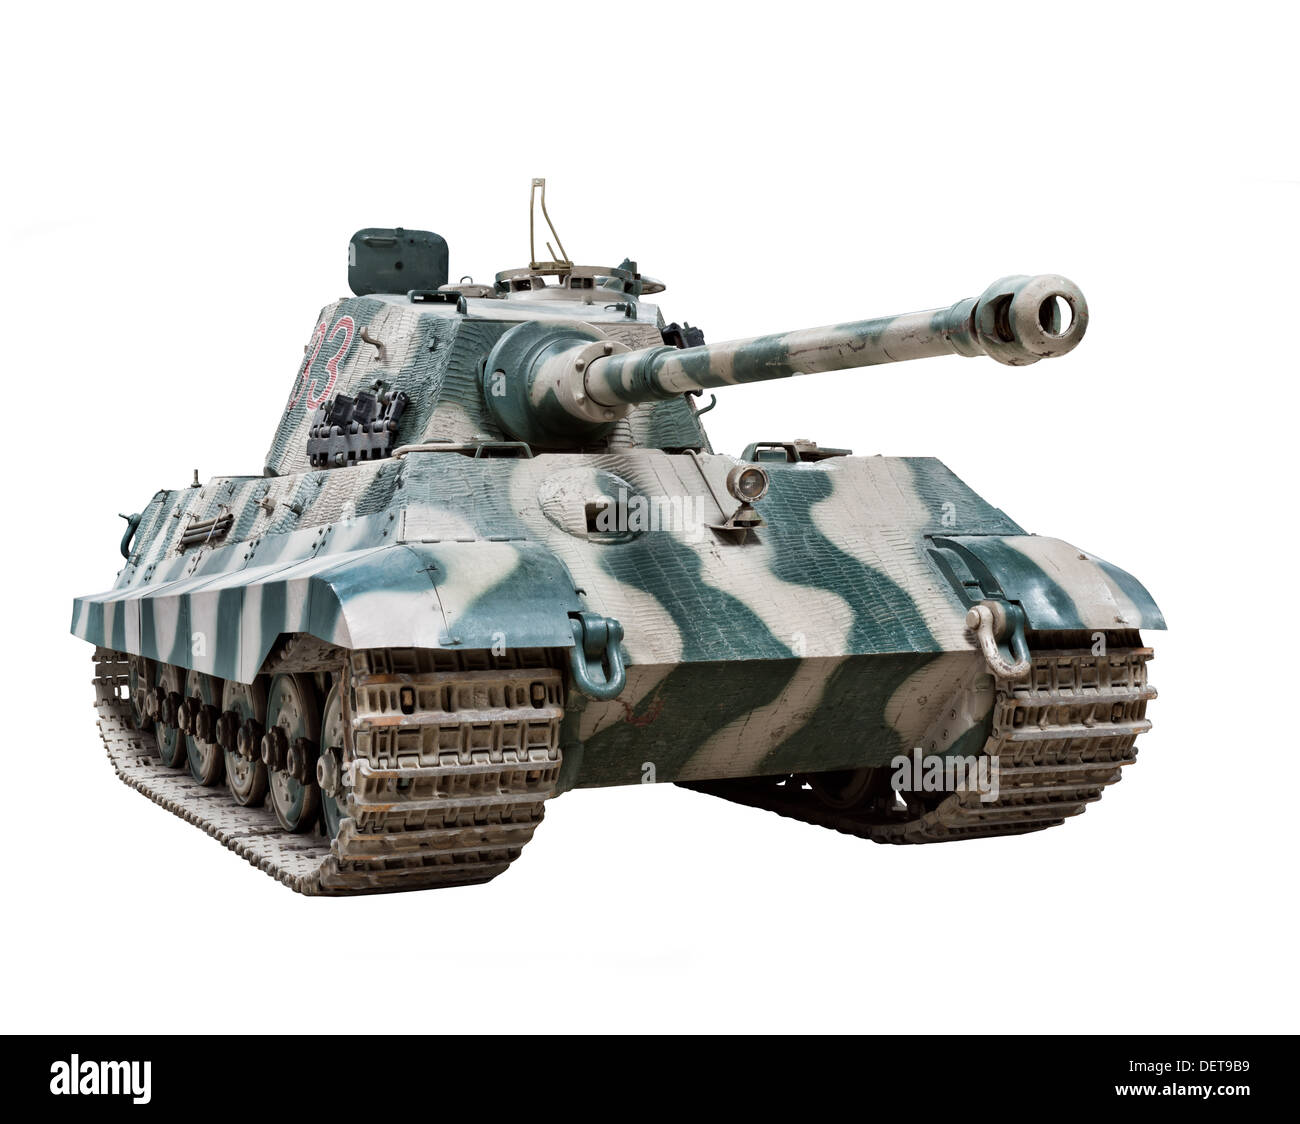 A 'King' Tiger II (Sd.Kfz.182) tank used by Nazi German forces towards the end of WW2 - Stock Image